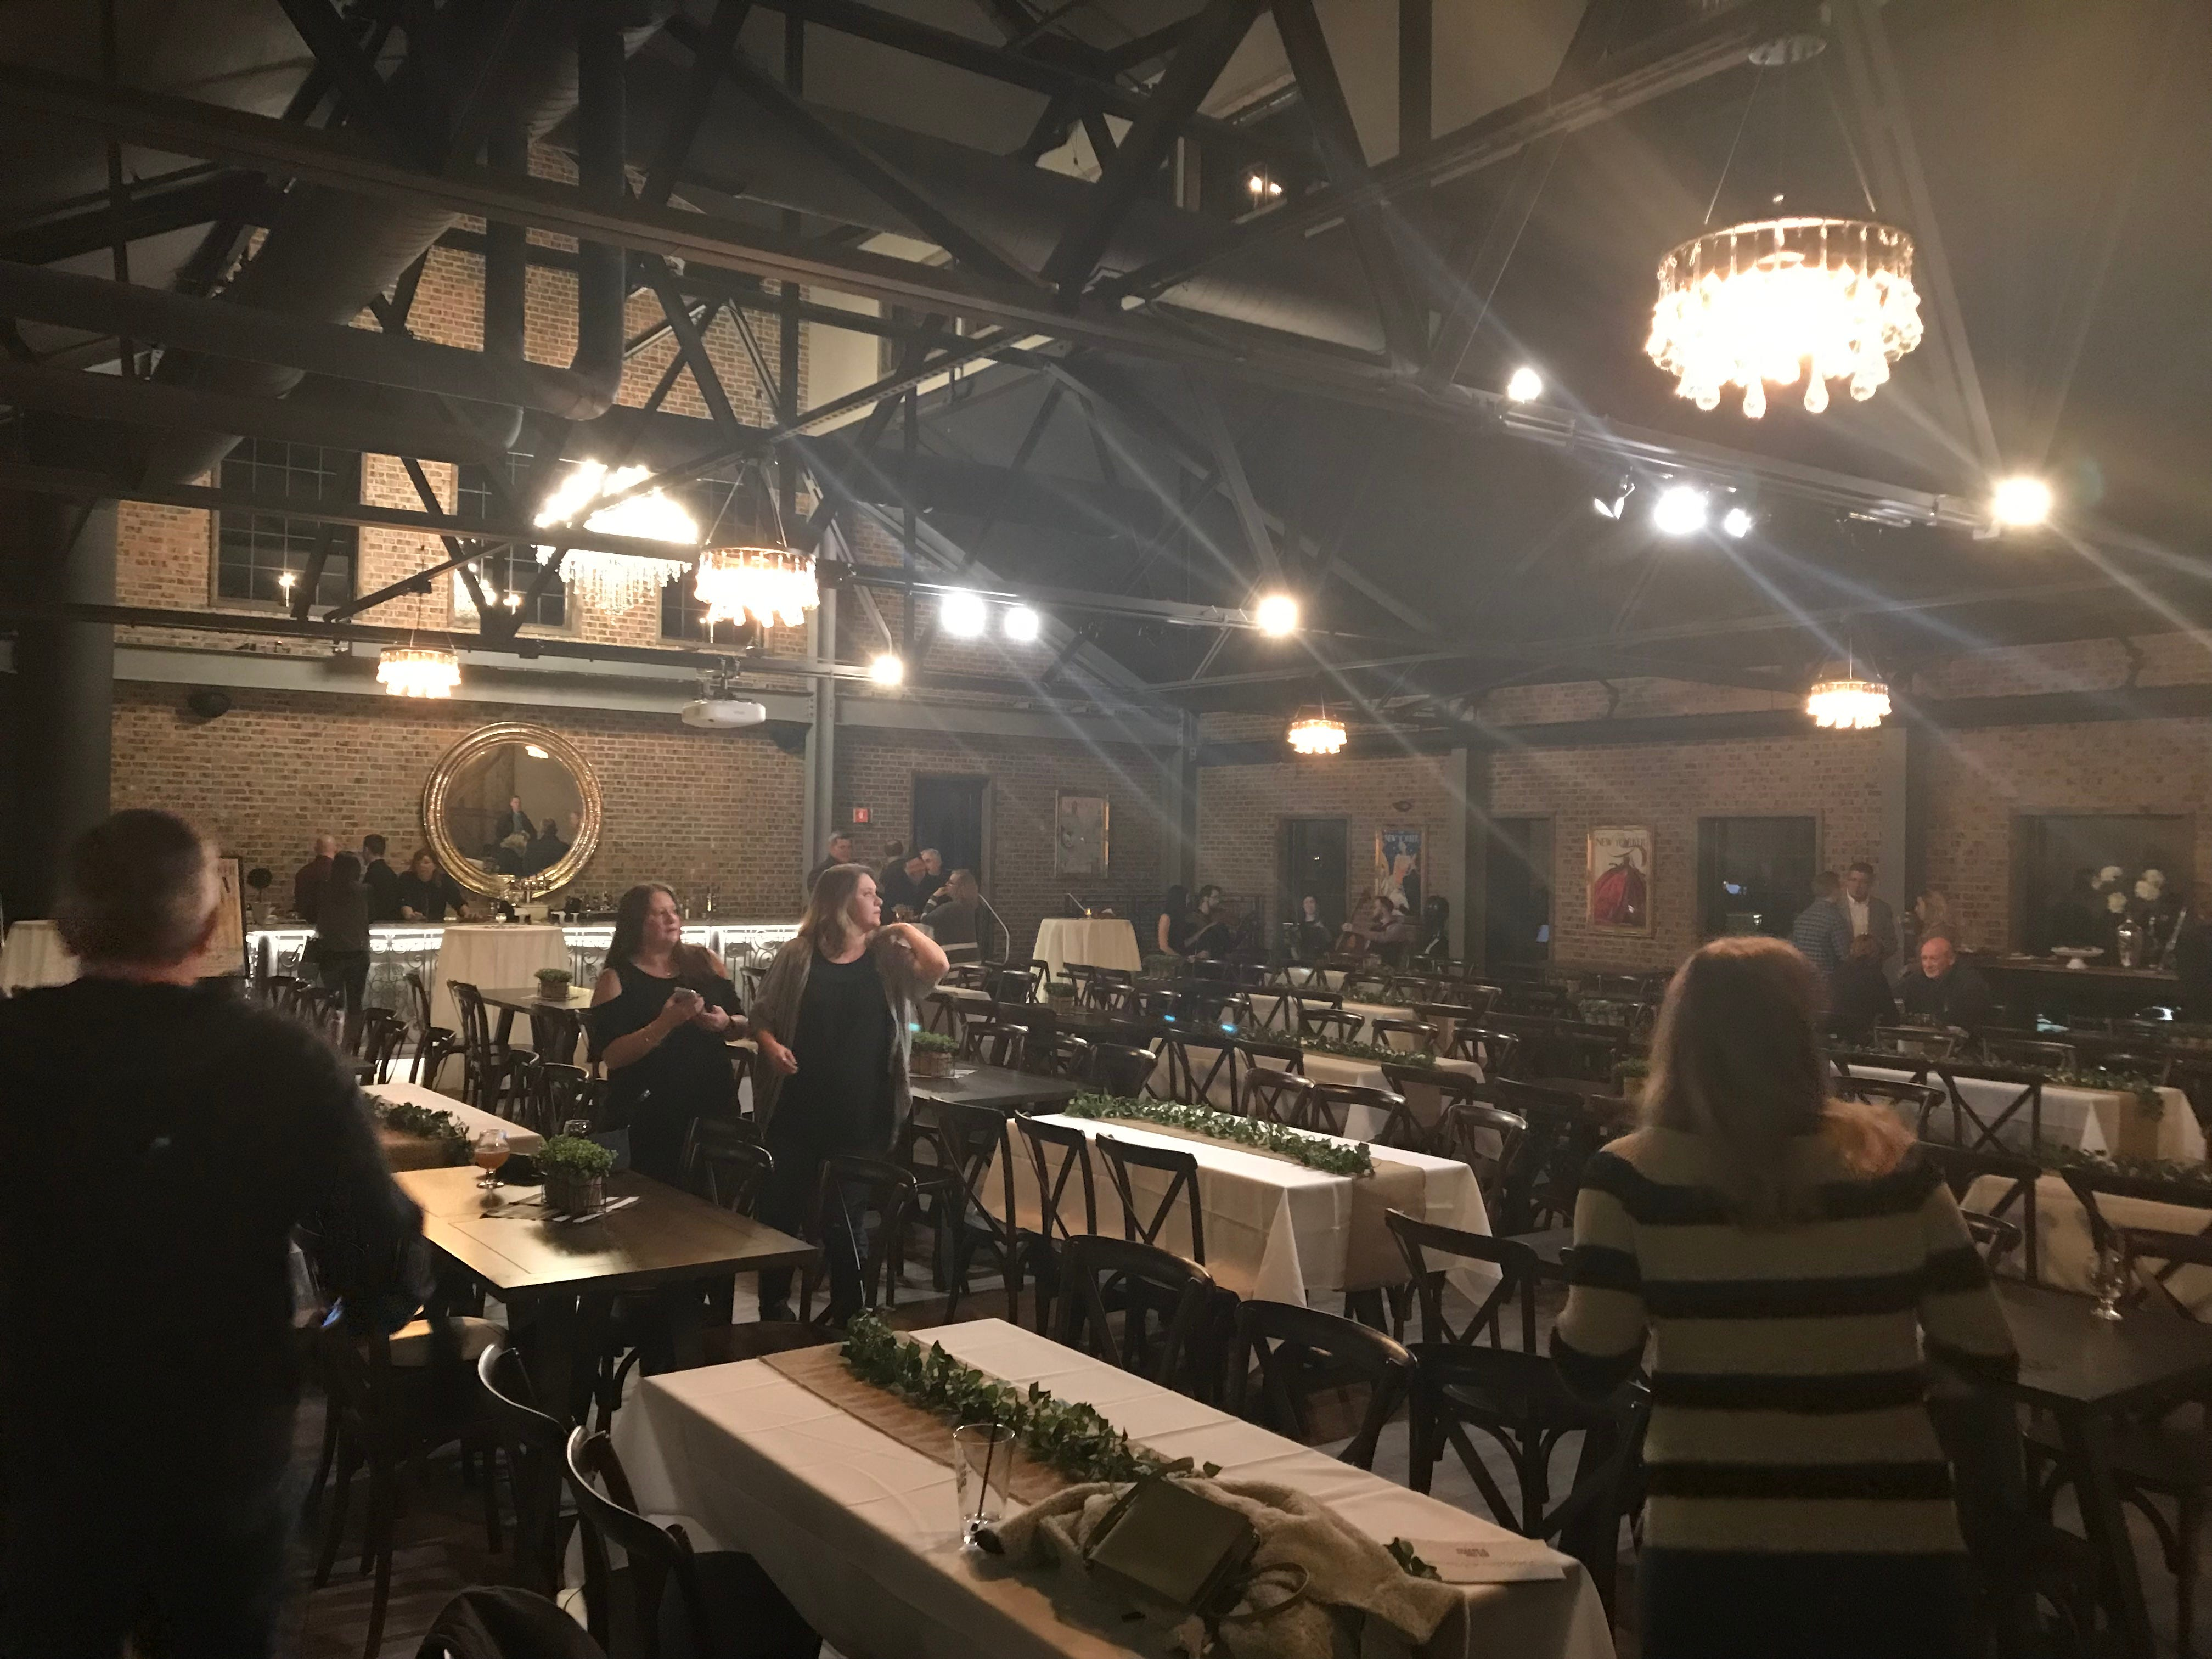 The second-floor event space at the New York Beer Project in Victor is available for private events and functions.